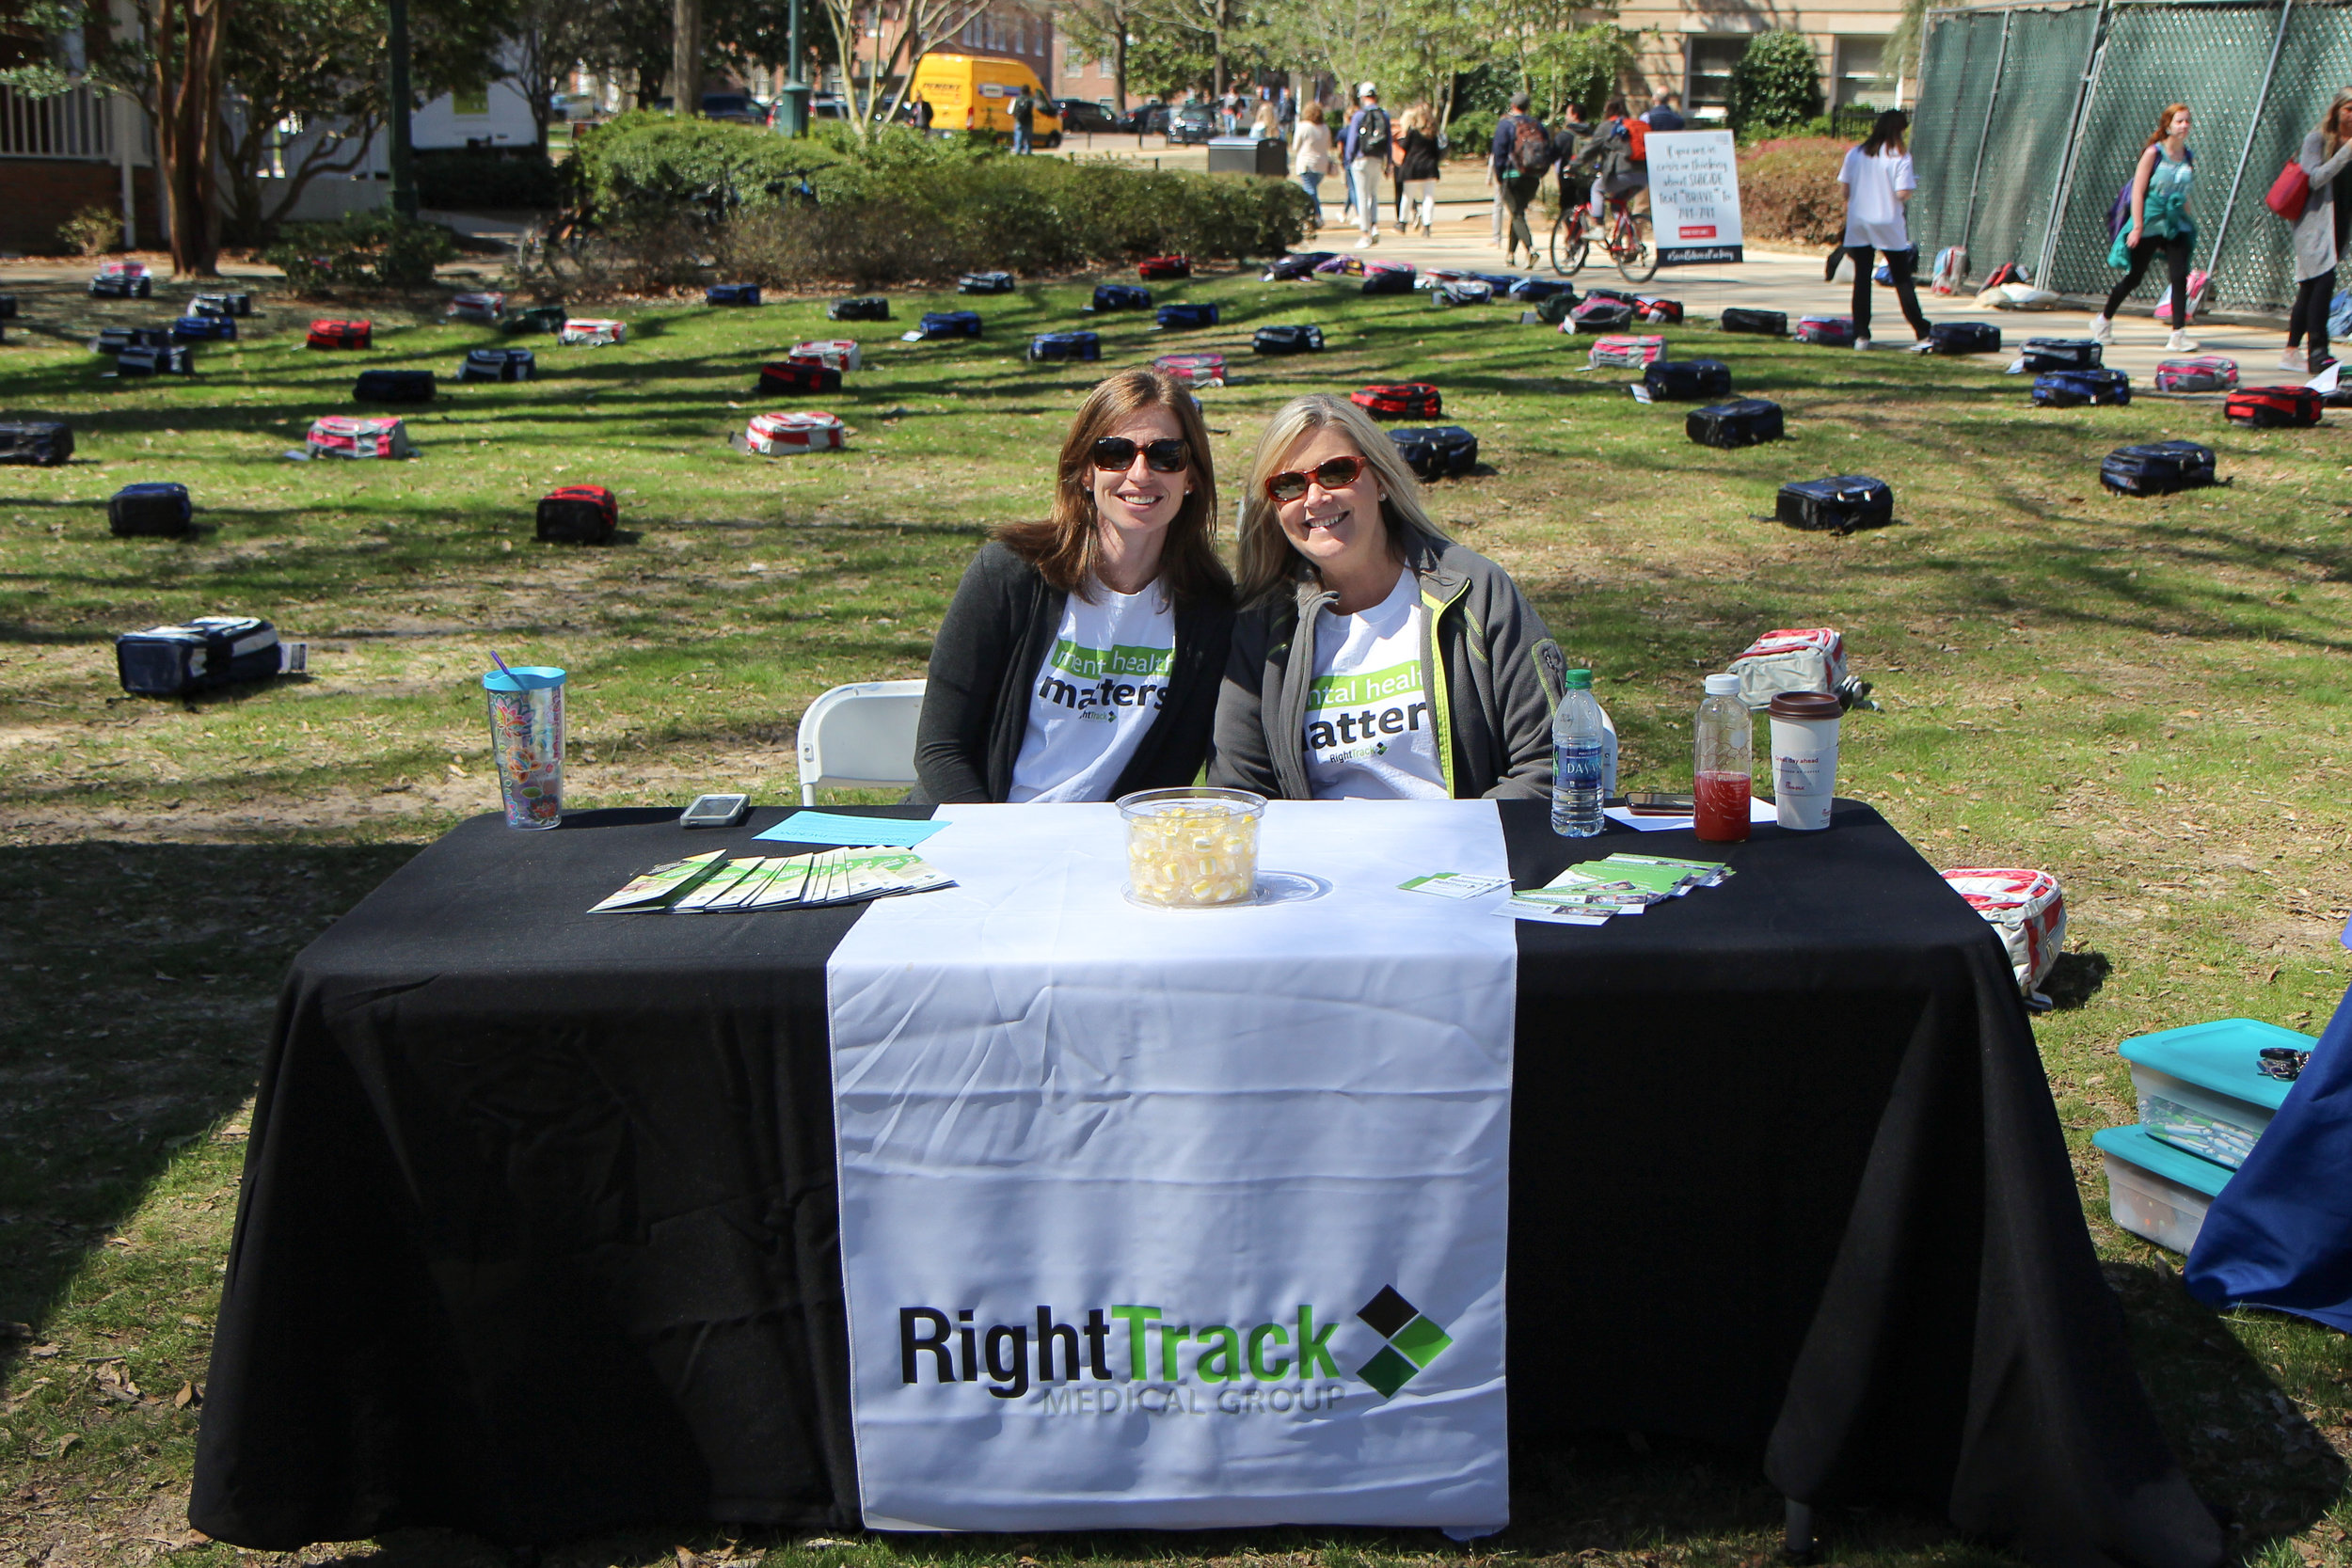 Right Track Medical Group's Therapist Emily Grace Ames, LPC, and Director of Outreach Carol Ann Hughes spent the day in the Grove offering support to students.